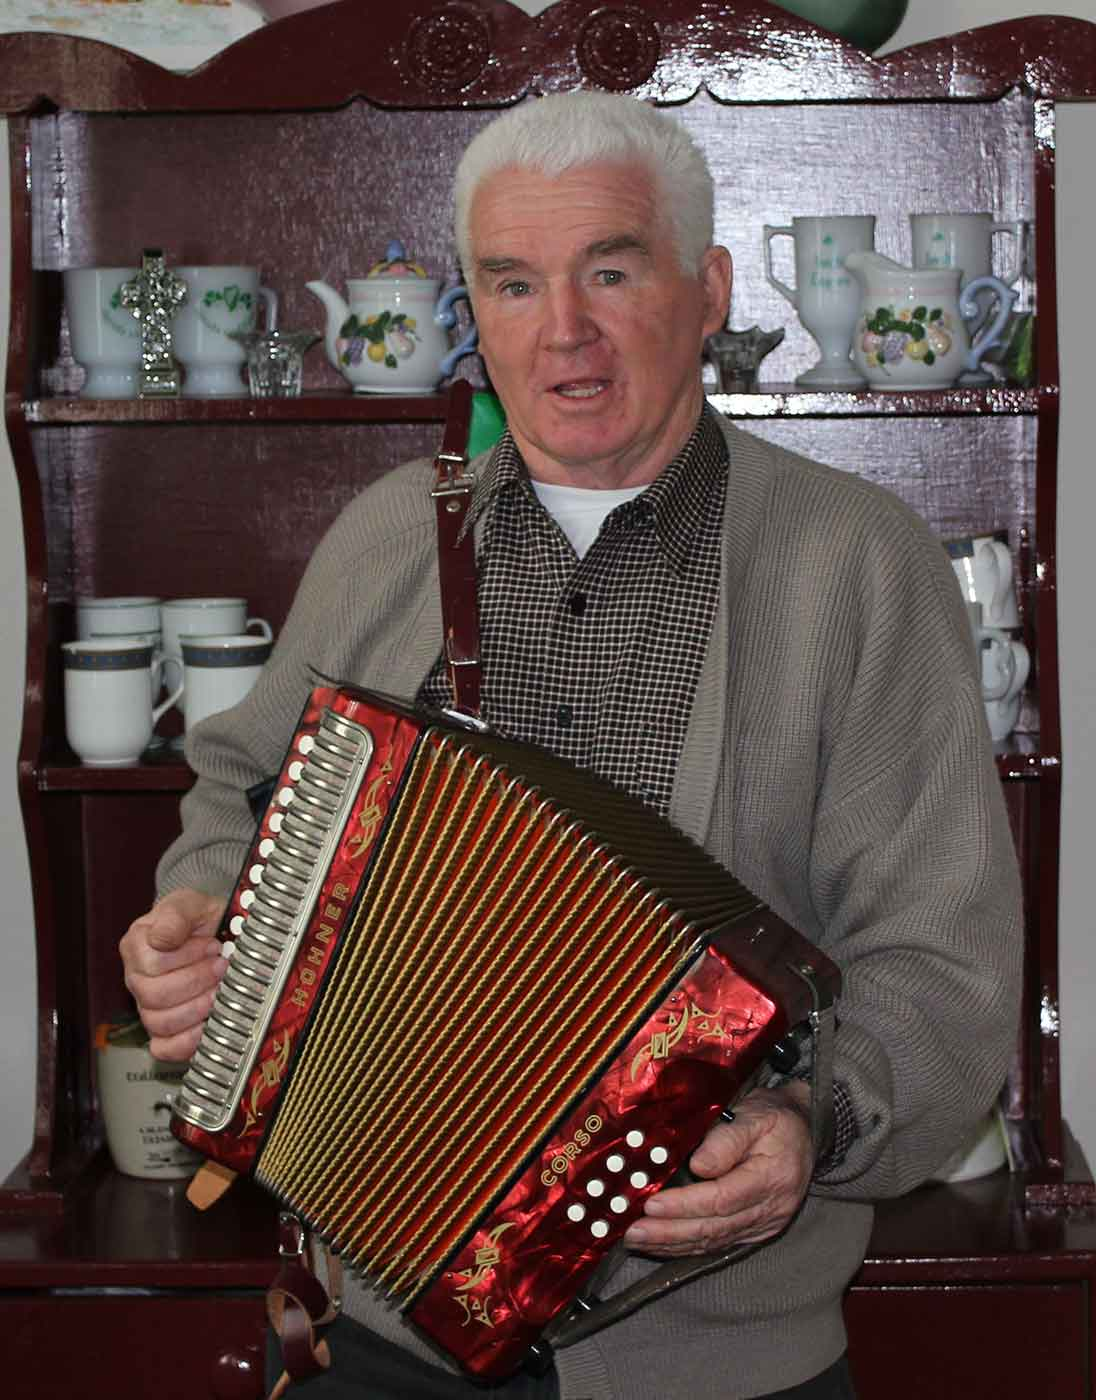 An elderly man is playing an accordion in front of a kitchen dresser. - click to view larger image